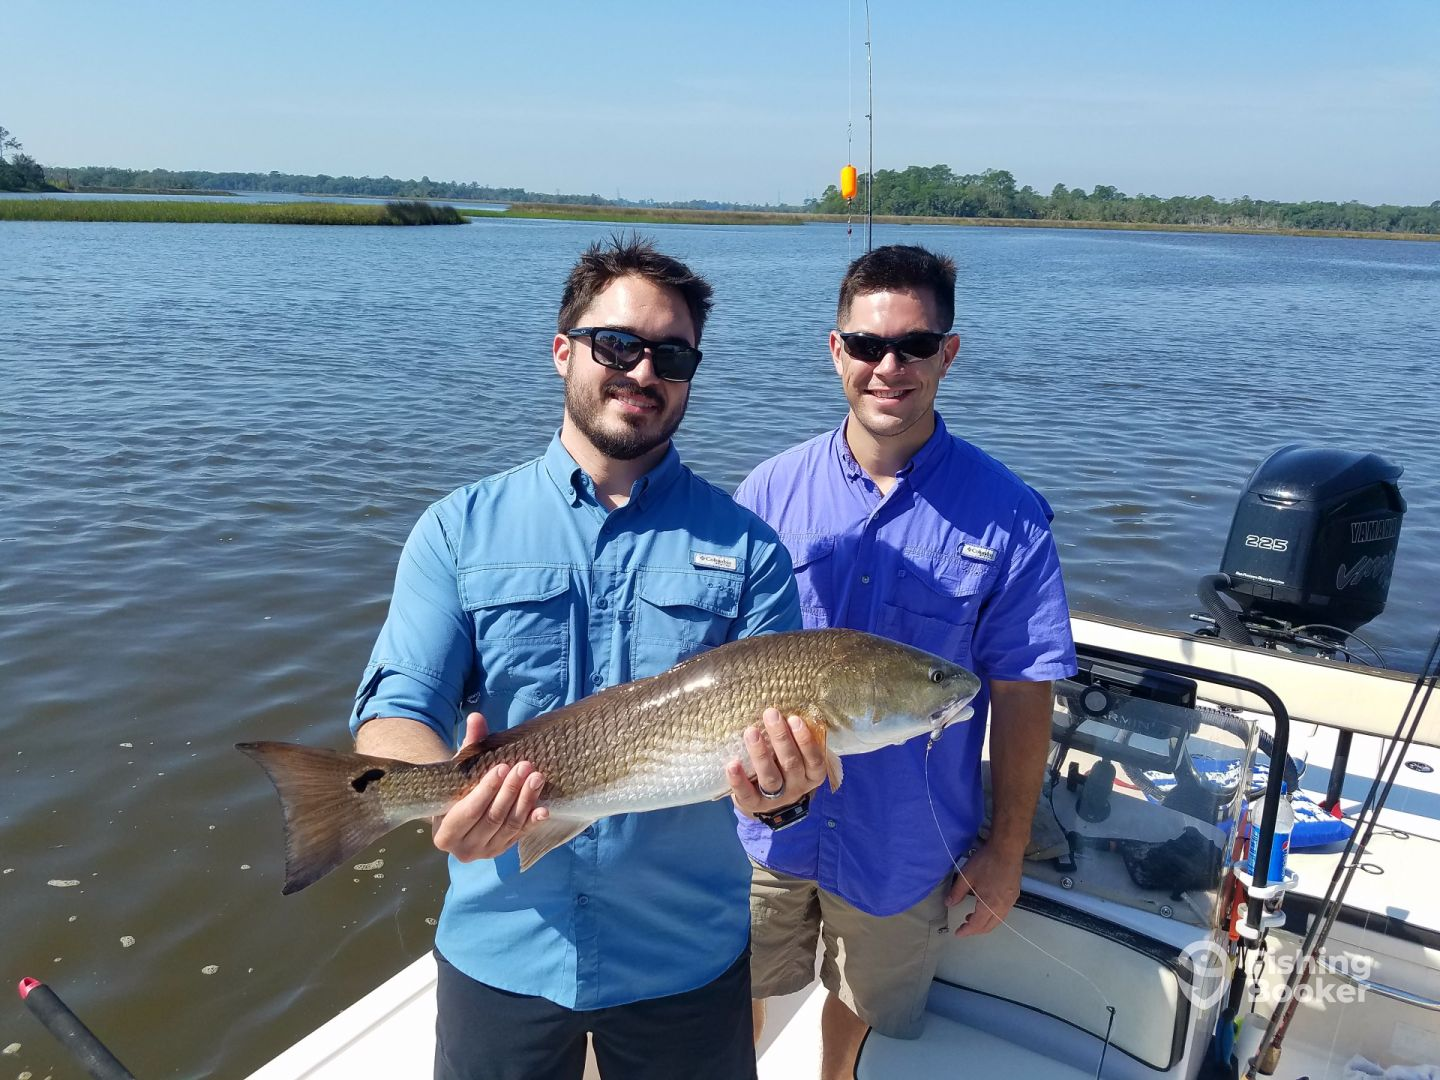 Bob, U.S. Military, first redfish 27inch 7lbs.